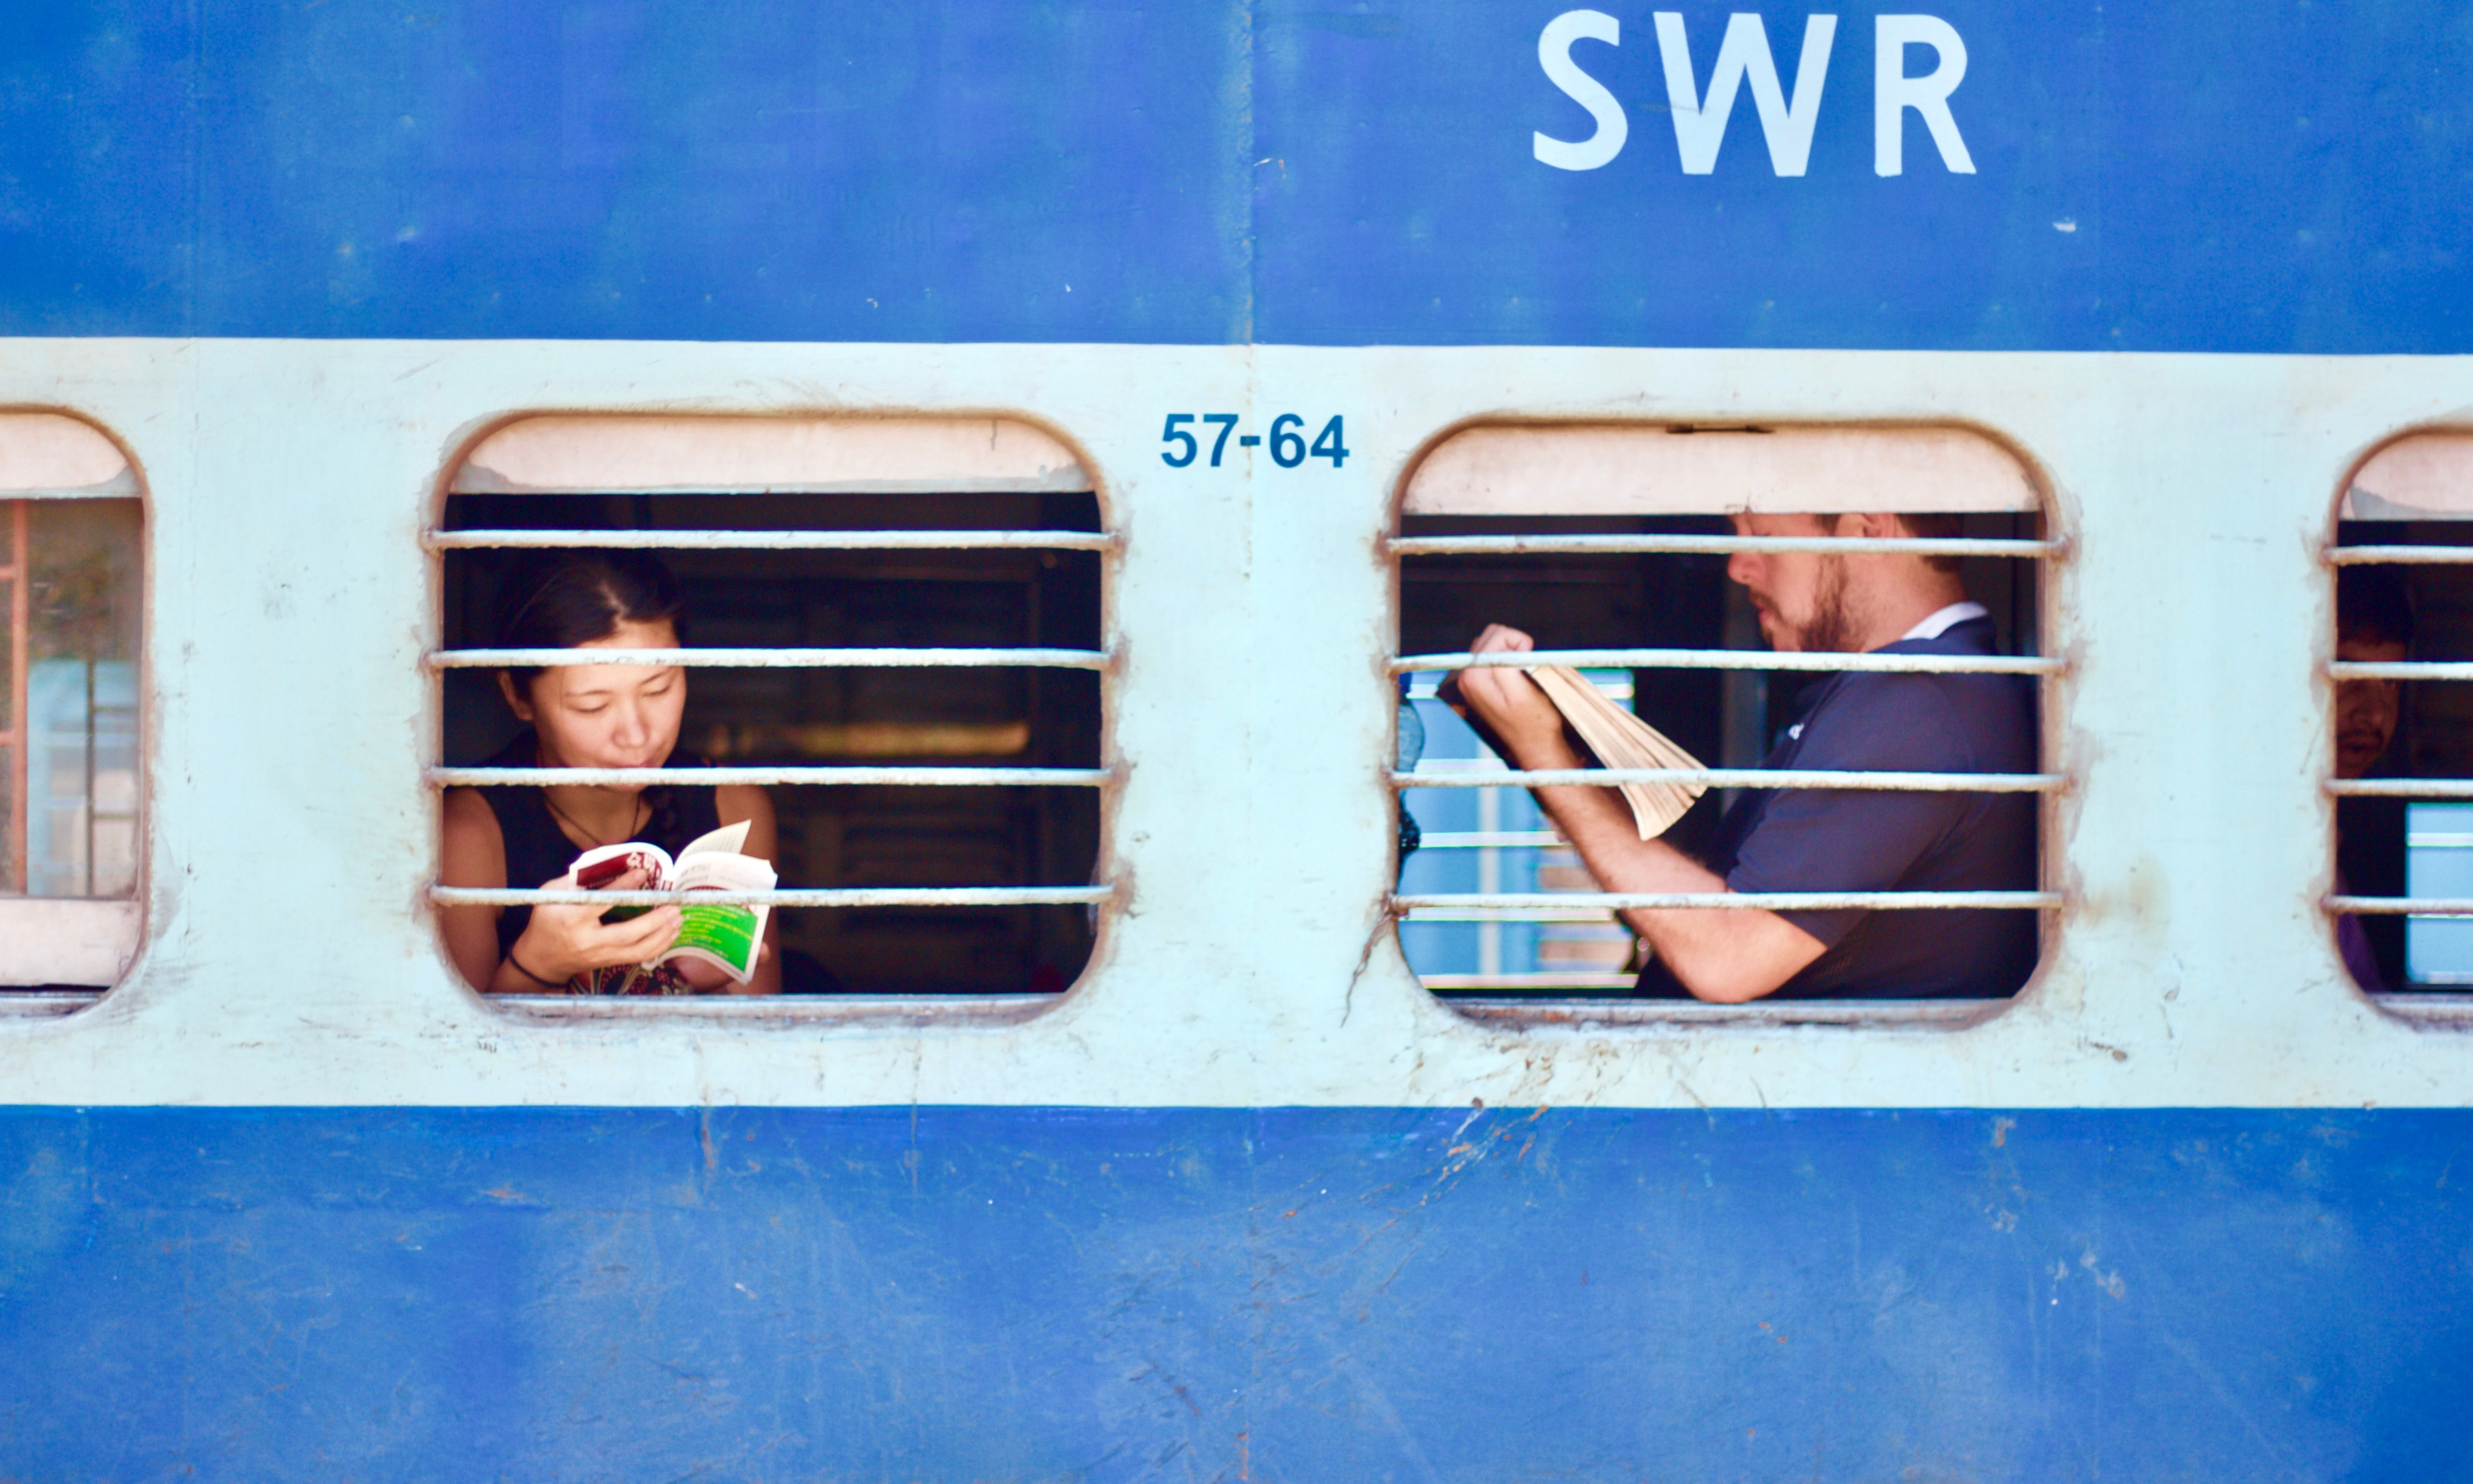 Two people reading books on an old train seen through its windows